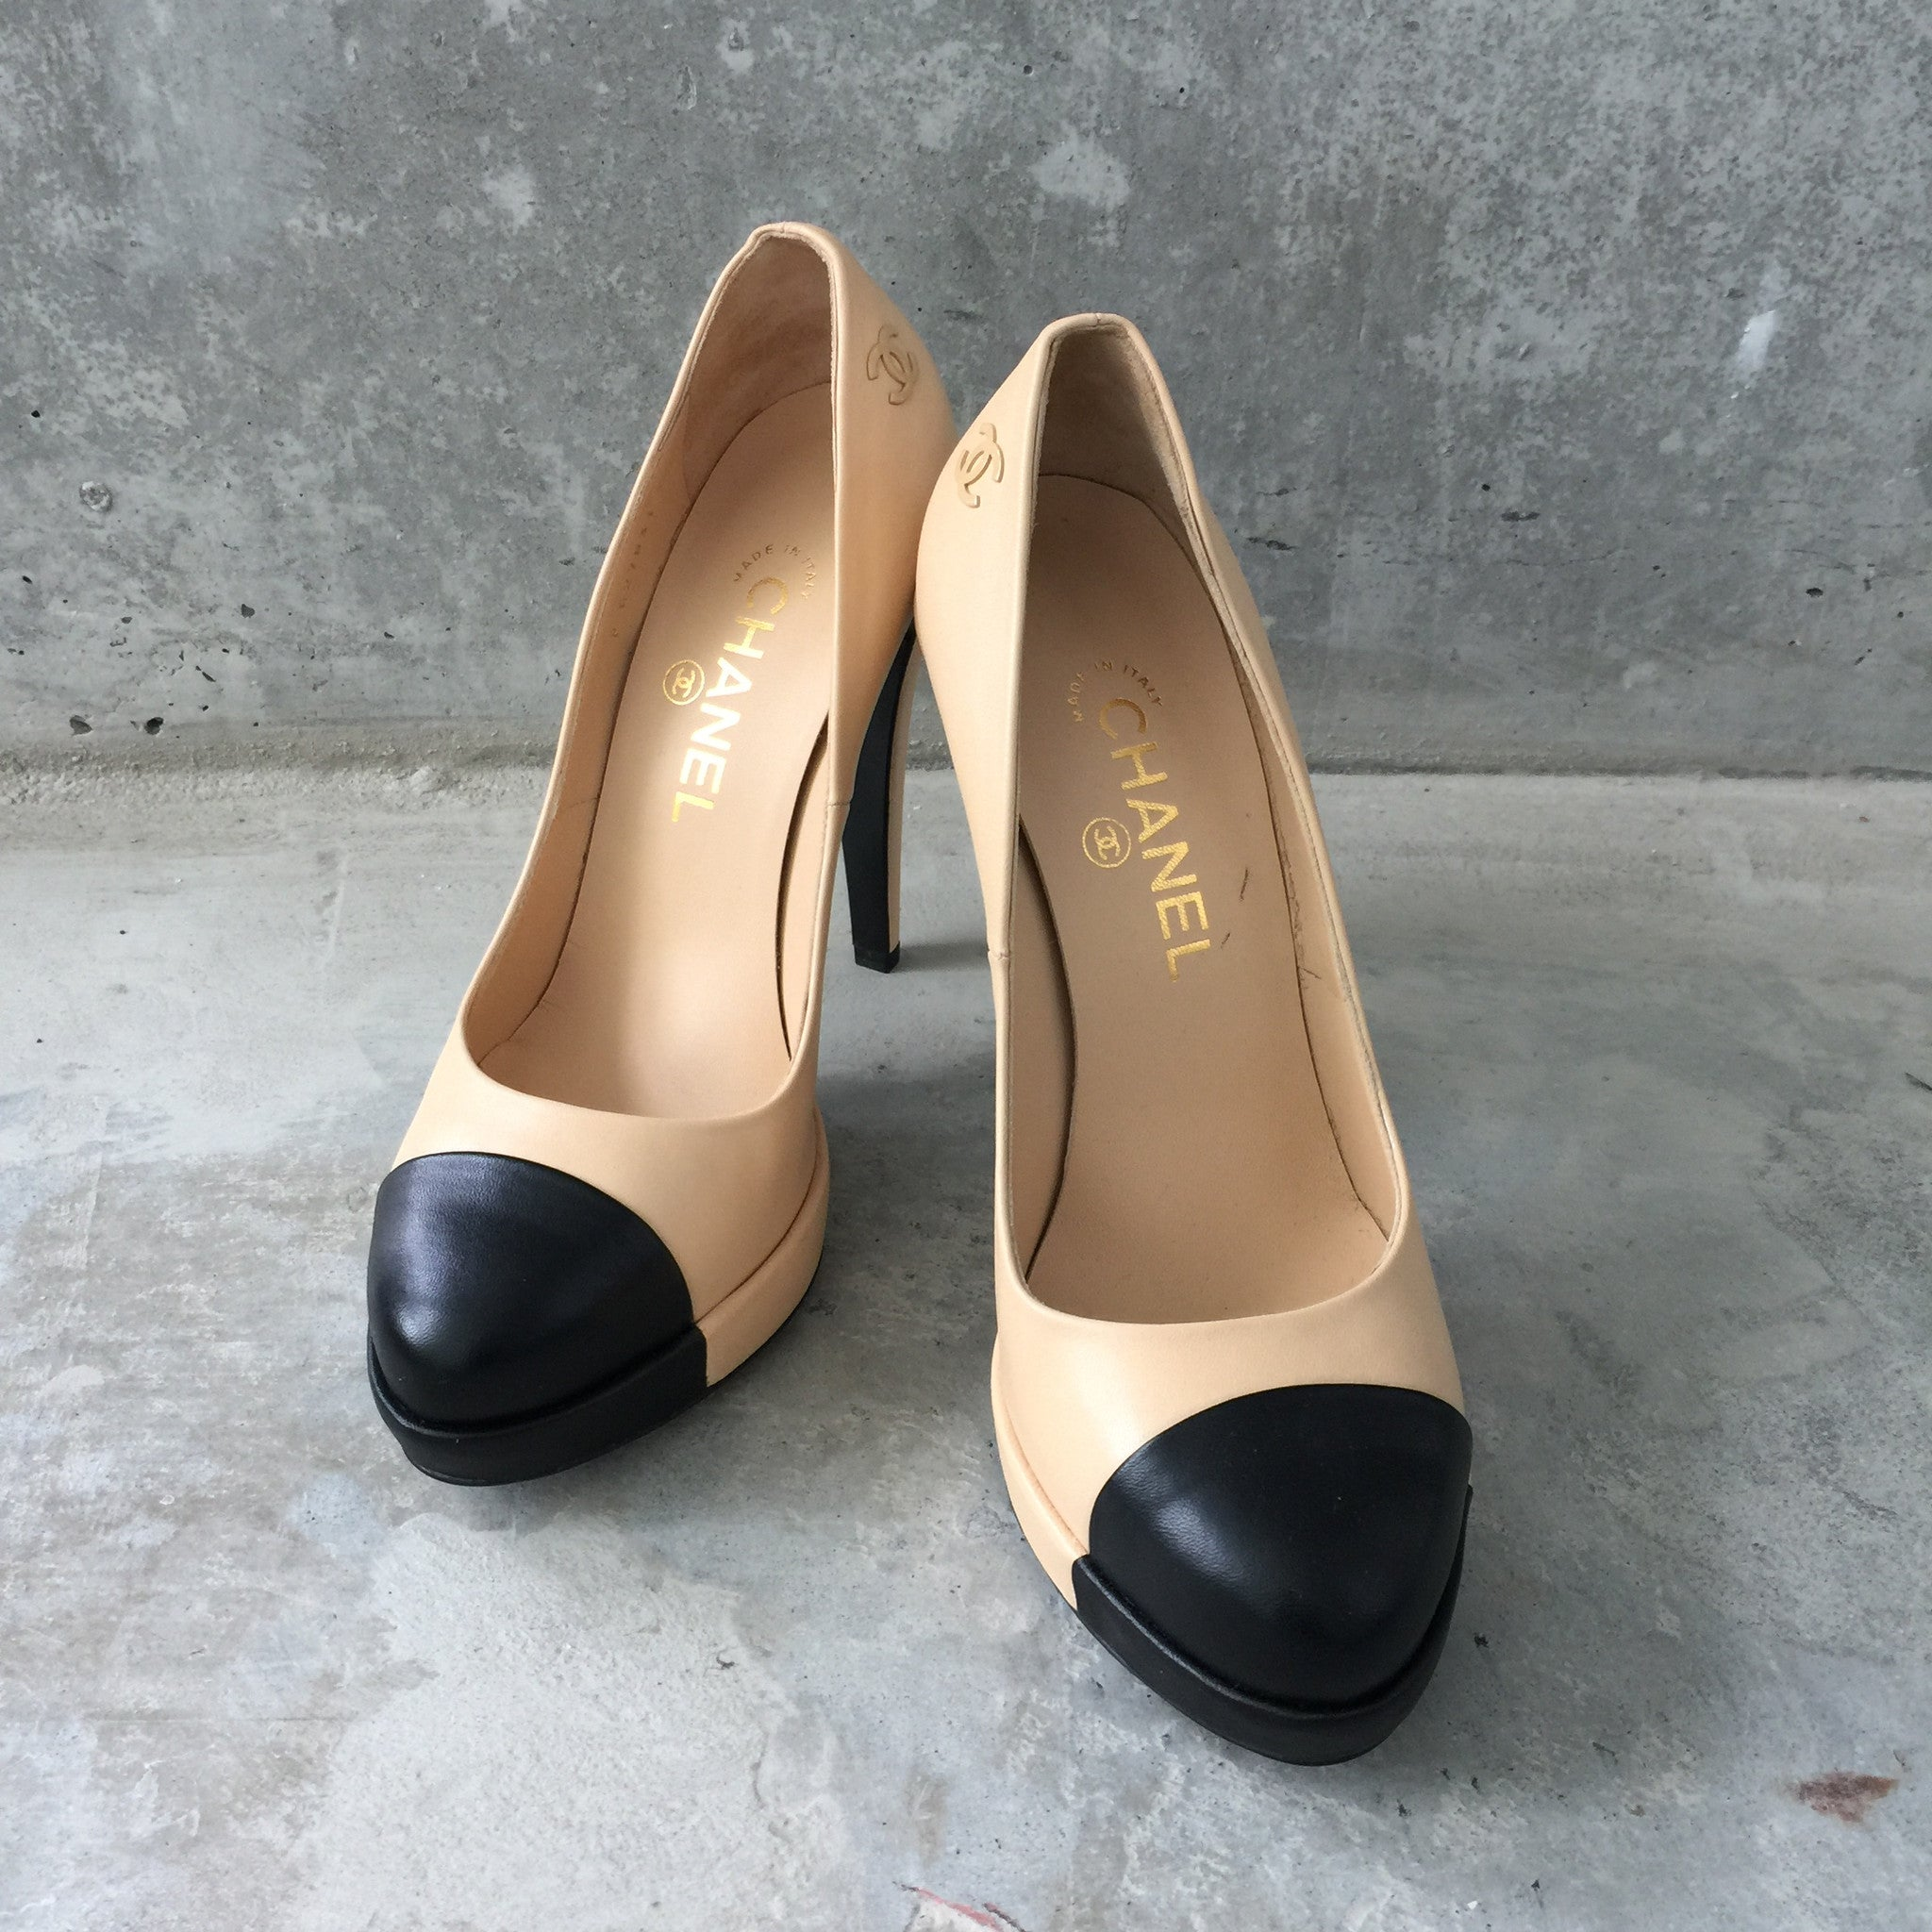 Authentic CHANEL Beige & Black Cap Toe Pumps Size 38